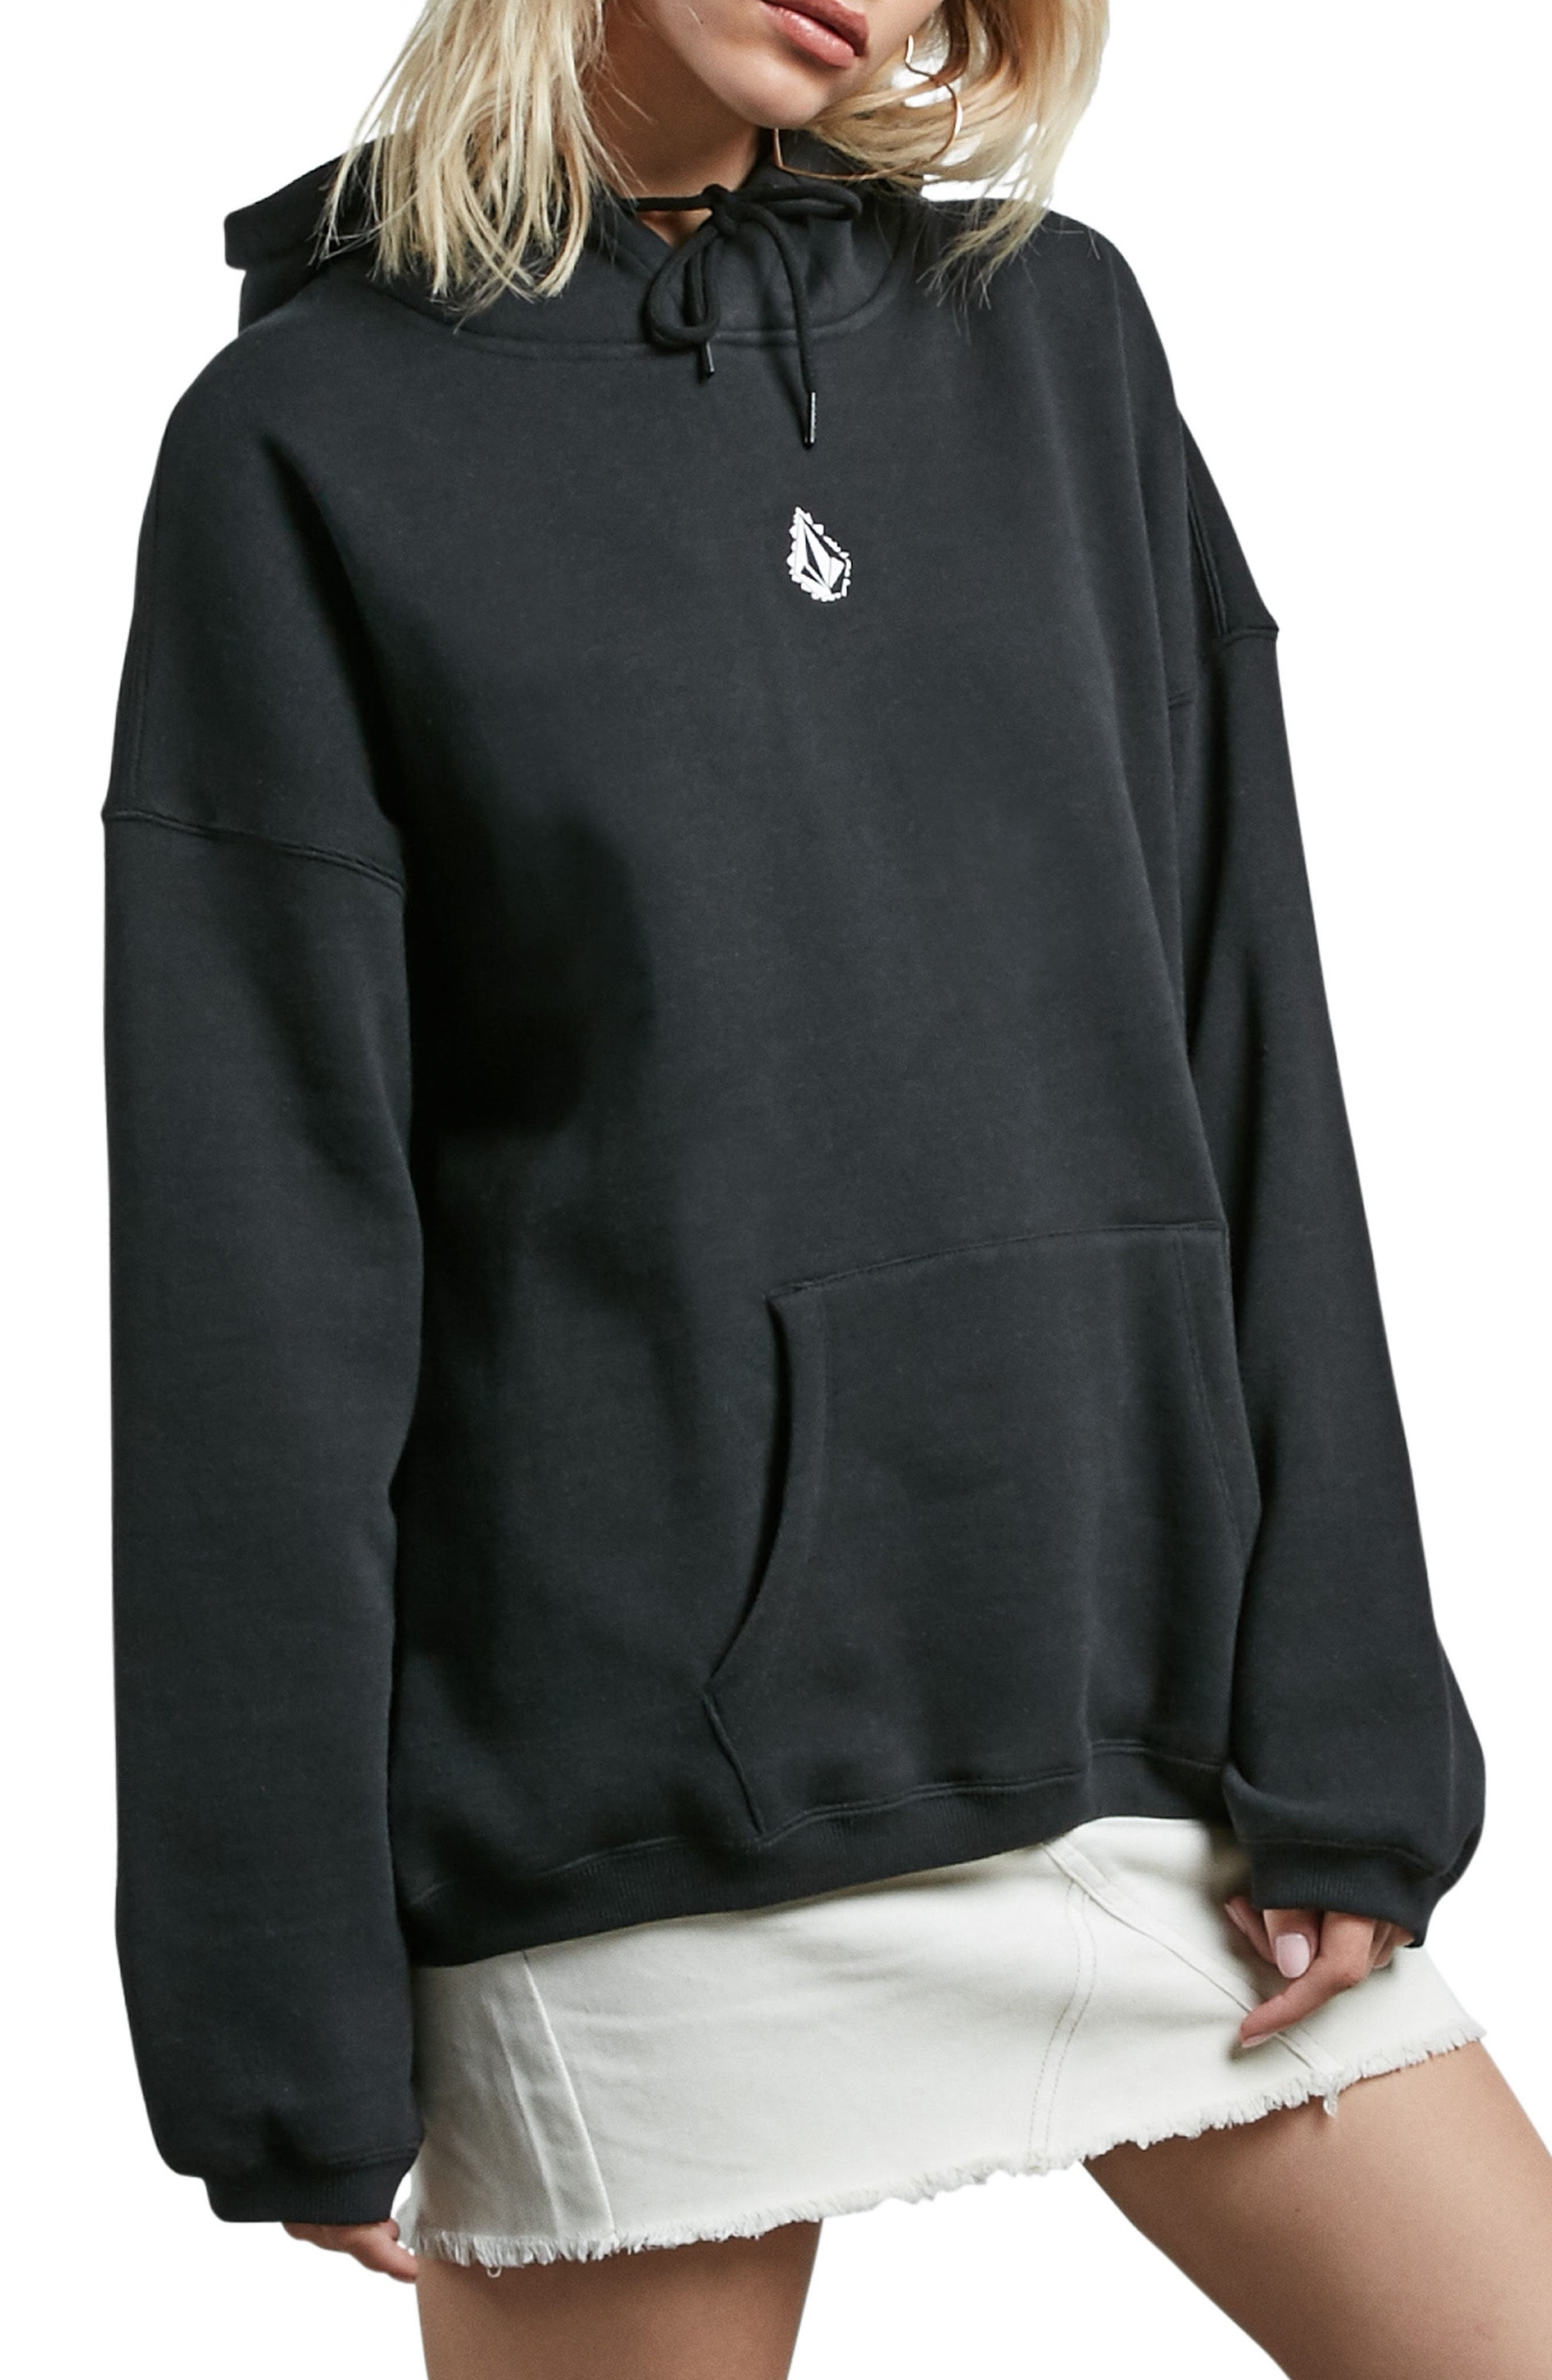 Roll It Up Hoodie,                             Main thumbnail 1, color,                             Black